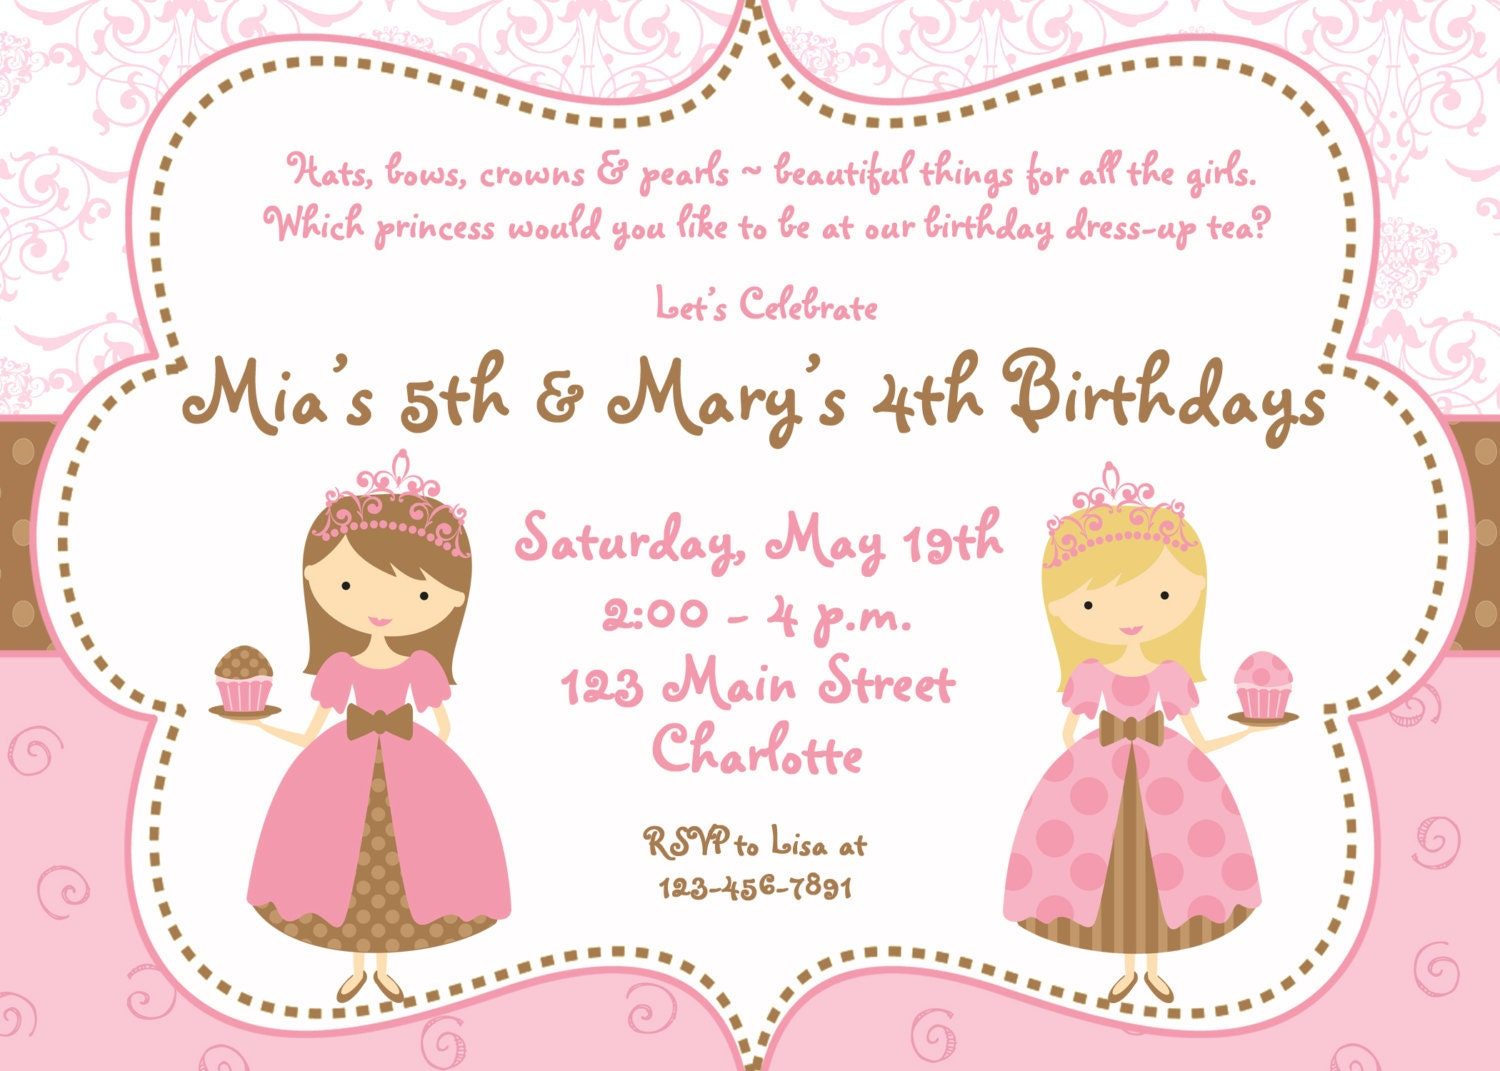 Tea Party Birthday Invitation Cupcake party princess tea